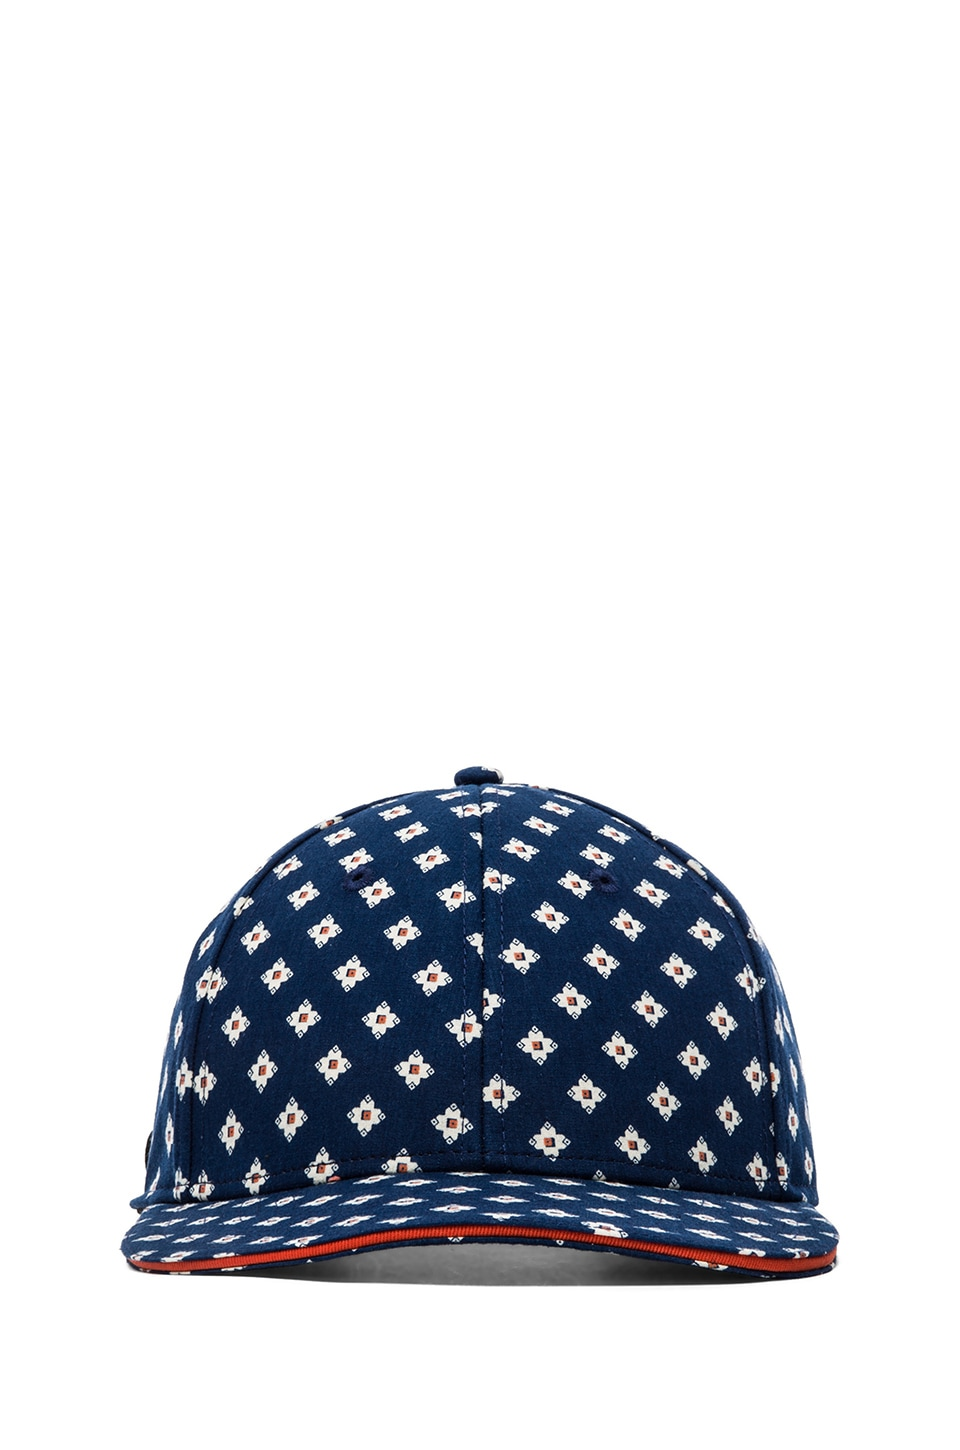 Marc by Marc Jacobs Catalina Chambray Cap in Indigo Multi